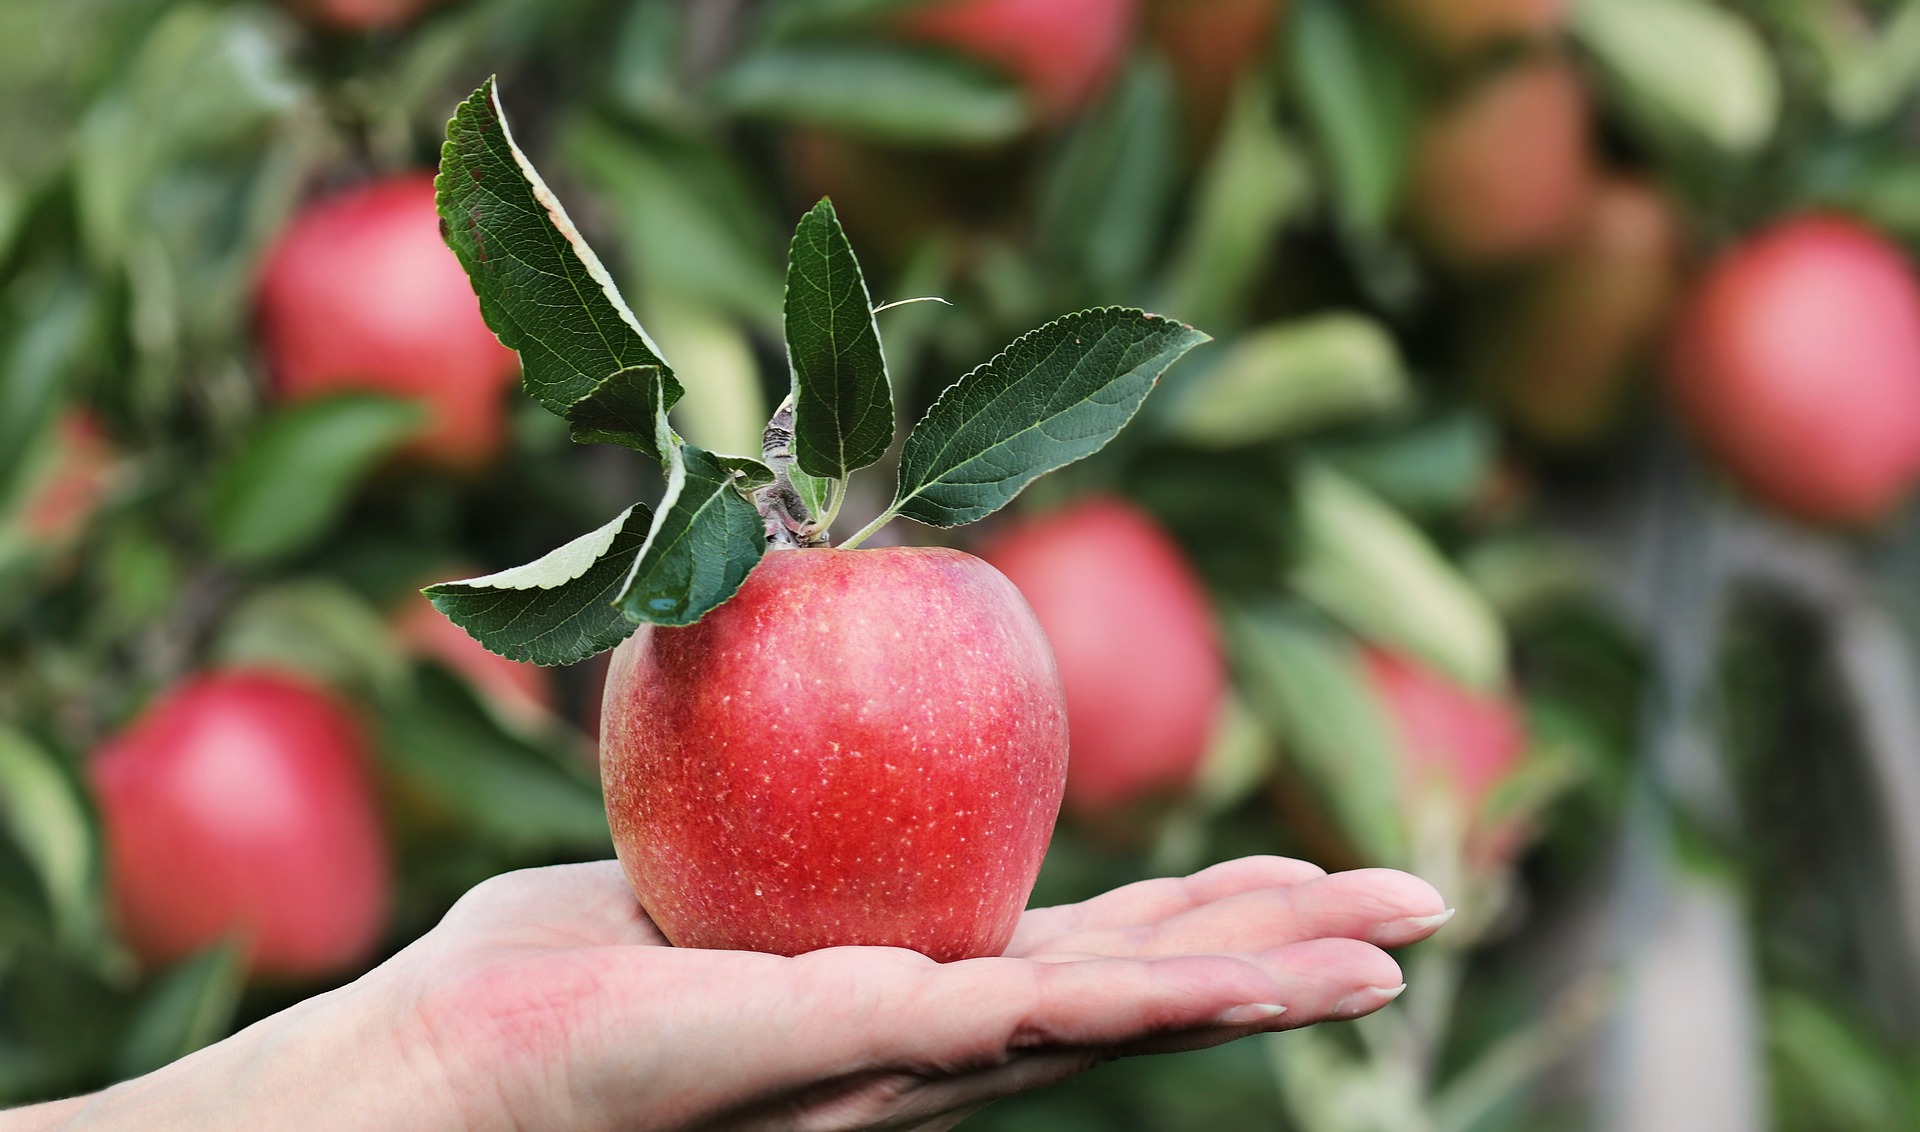 Organic apples had greater diversity of bacteria in all parts of the apple according to a new study